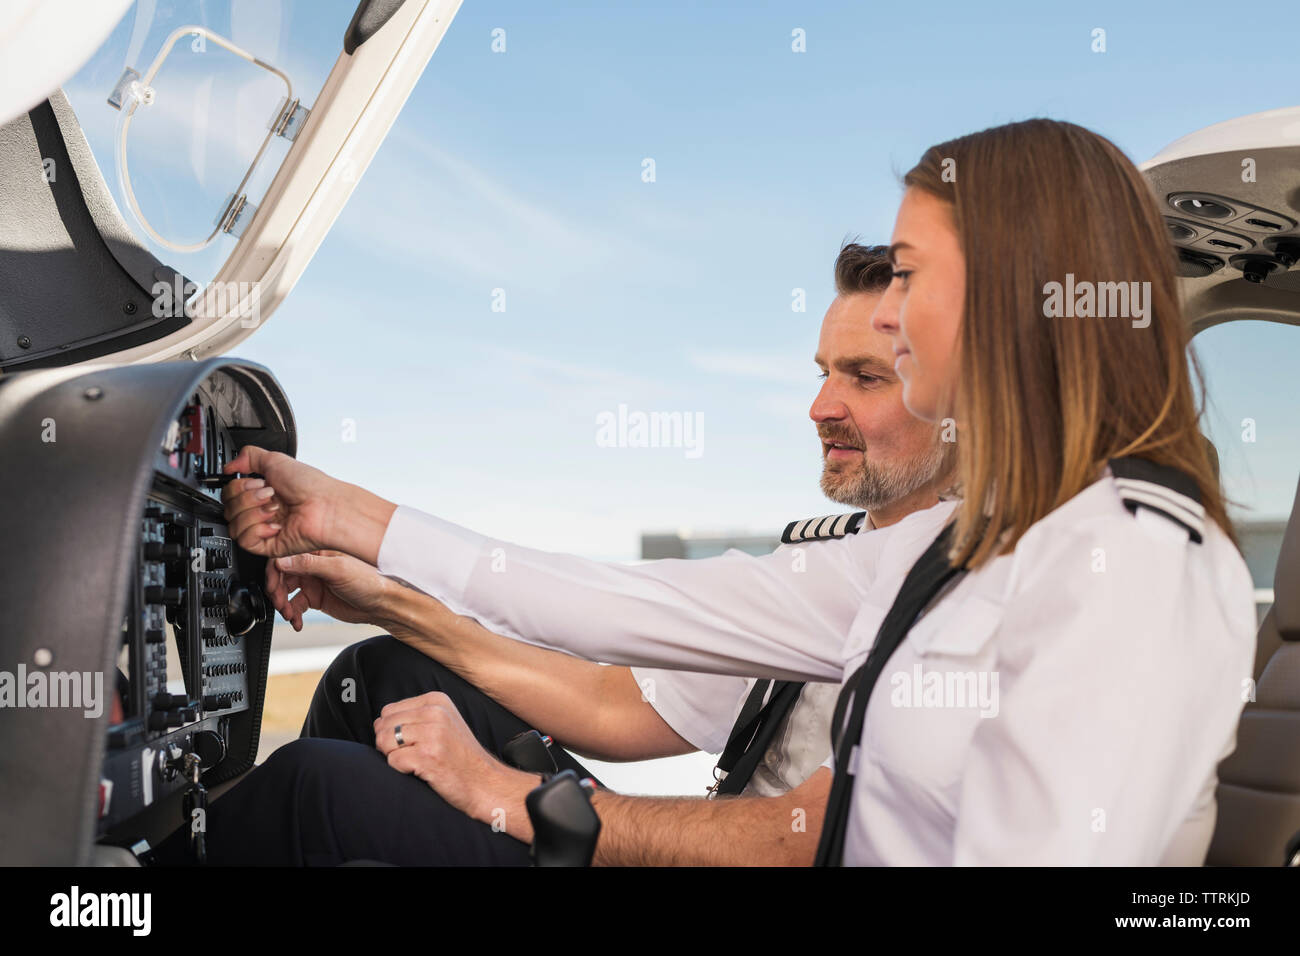 Side view of male pilot teaching female trainee to operate control panel in airplane against blue sky at airport - Stock Image